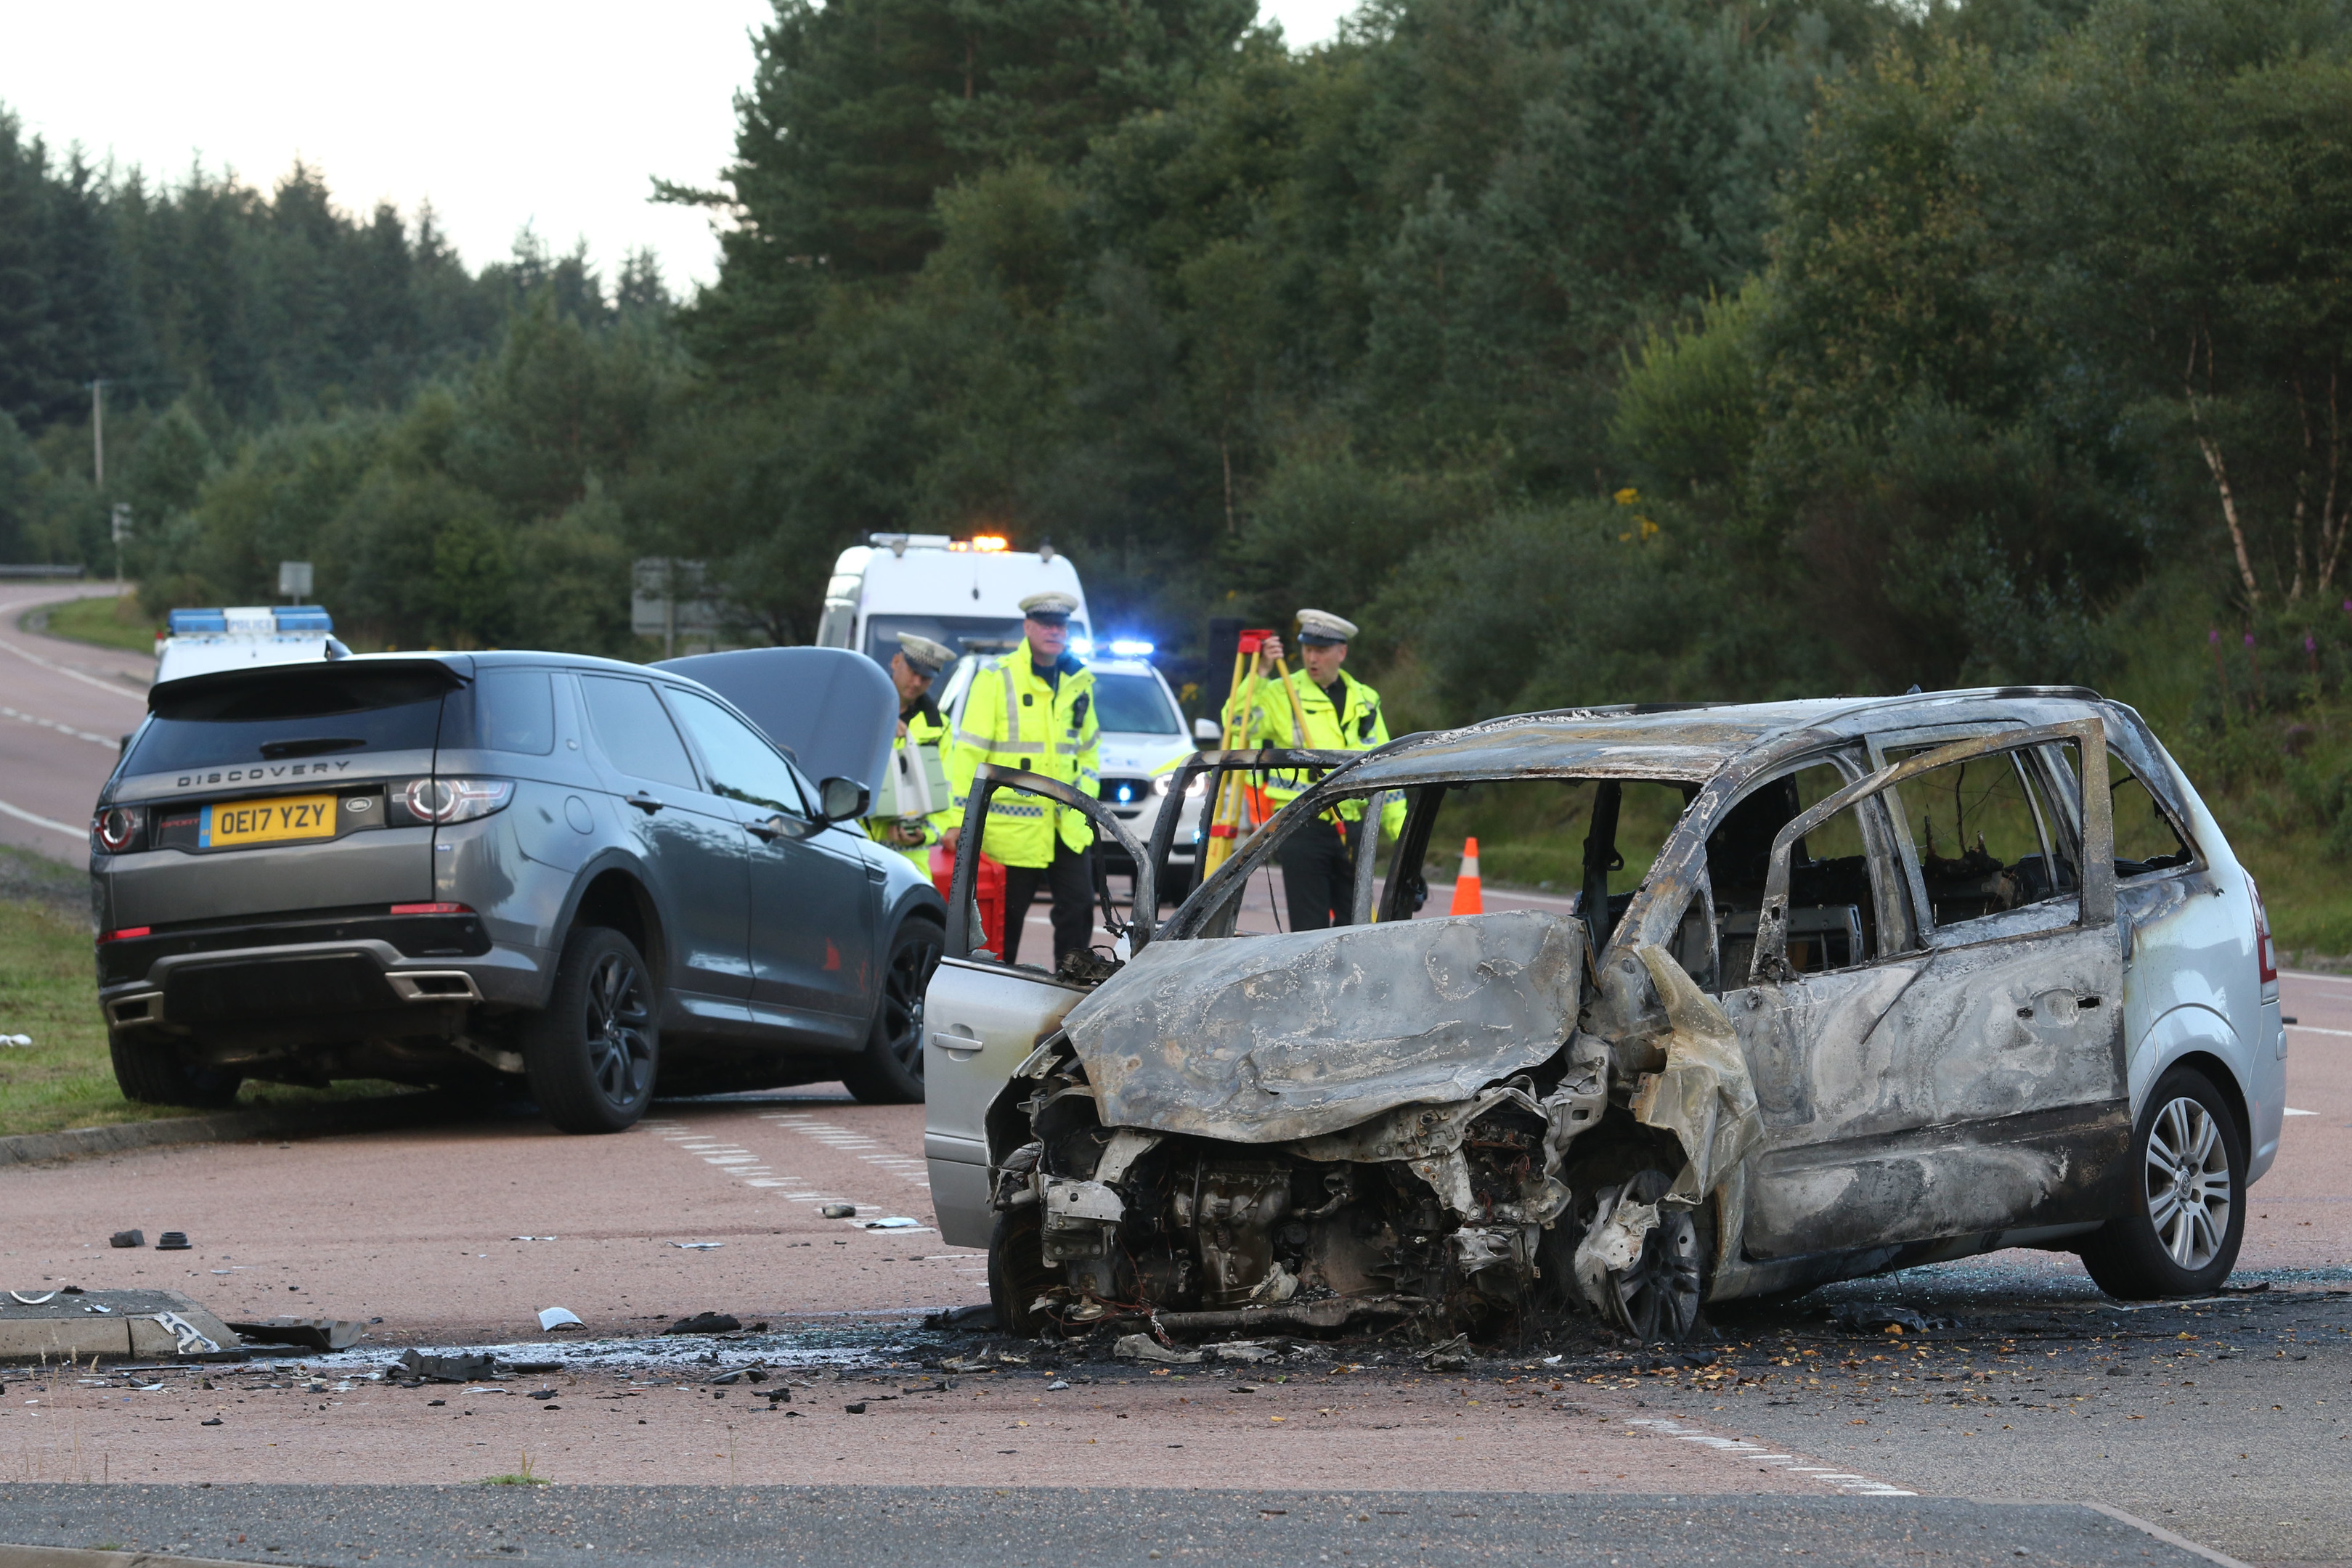 """26 August 2017: Scene of an RTC on the A9 at Ralia near Newtonmore. Three young children were in one of the vehicles. One was taken to hospital by air ambulance with serious injuries. A senior police officer at the scene described the crash as """"spectacular"""" but said the latest information was that all of the casualties were going to be """"okay"""". Picture: Andrew Smith"""